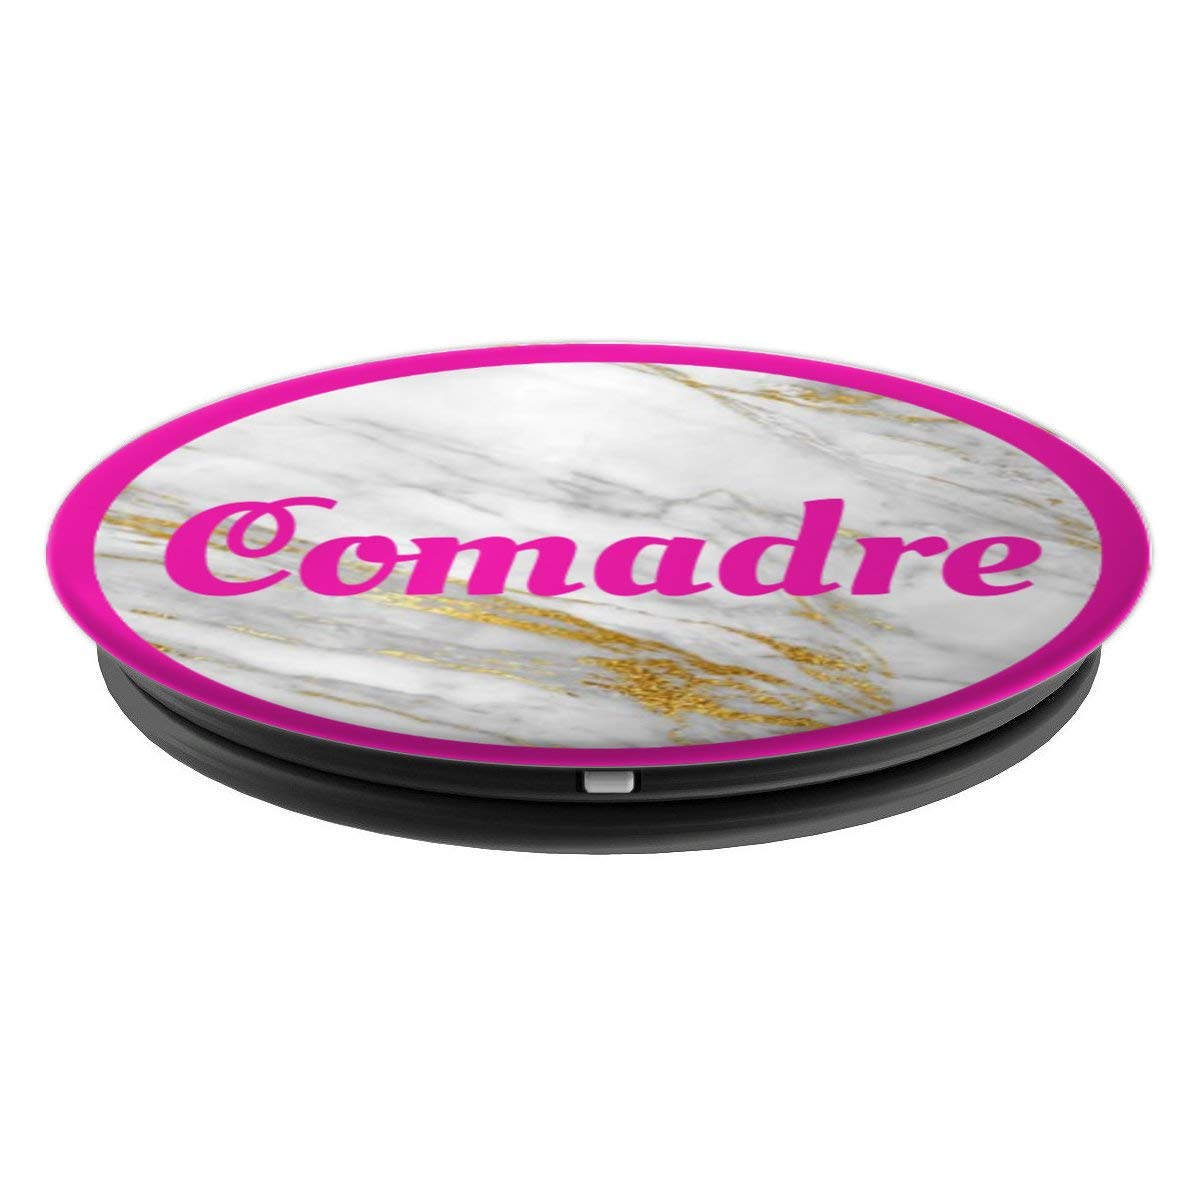 Amazon.com: Comadre Phone Grip Latina Gift Spanish Gold Marble GodMom - PopSockets Grip and Stand for Phones and Tablets: Cell Phones & Accessories